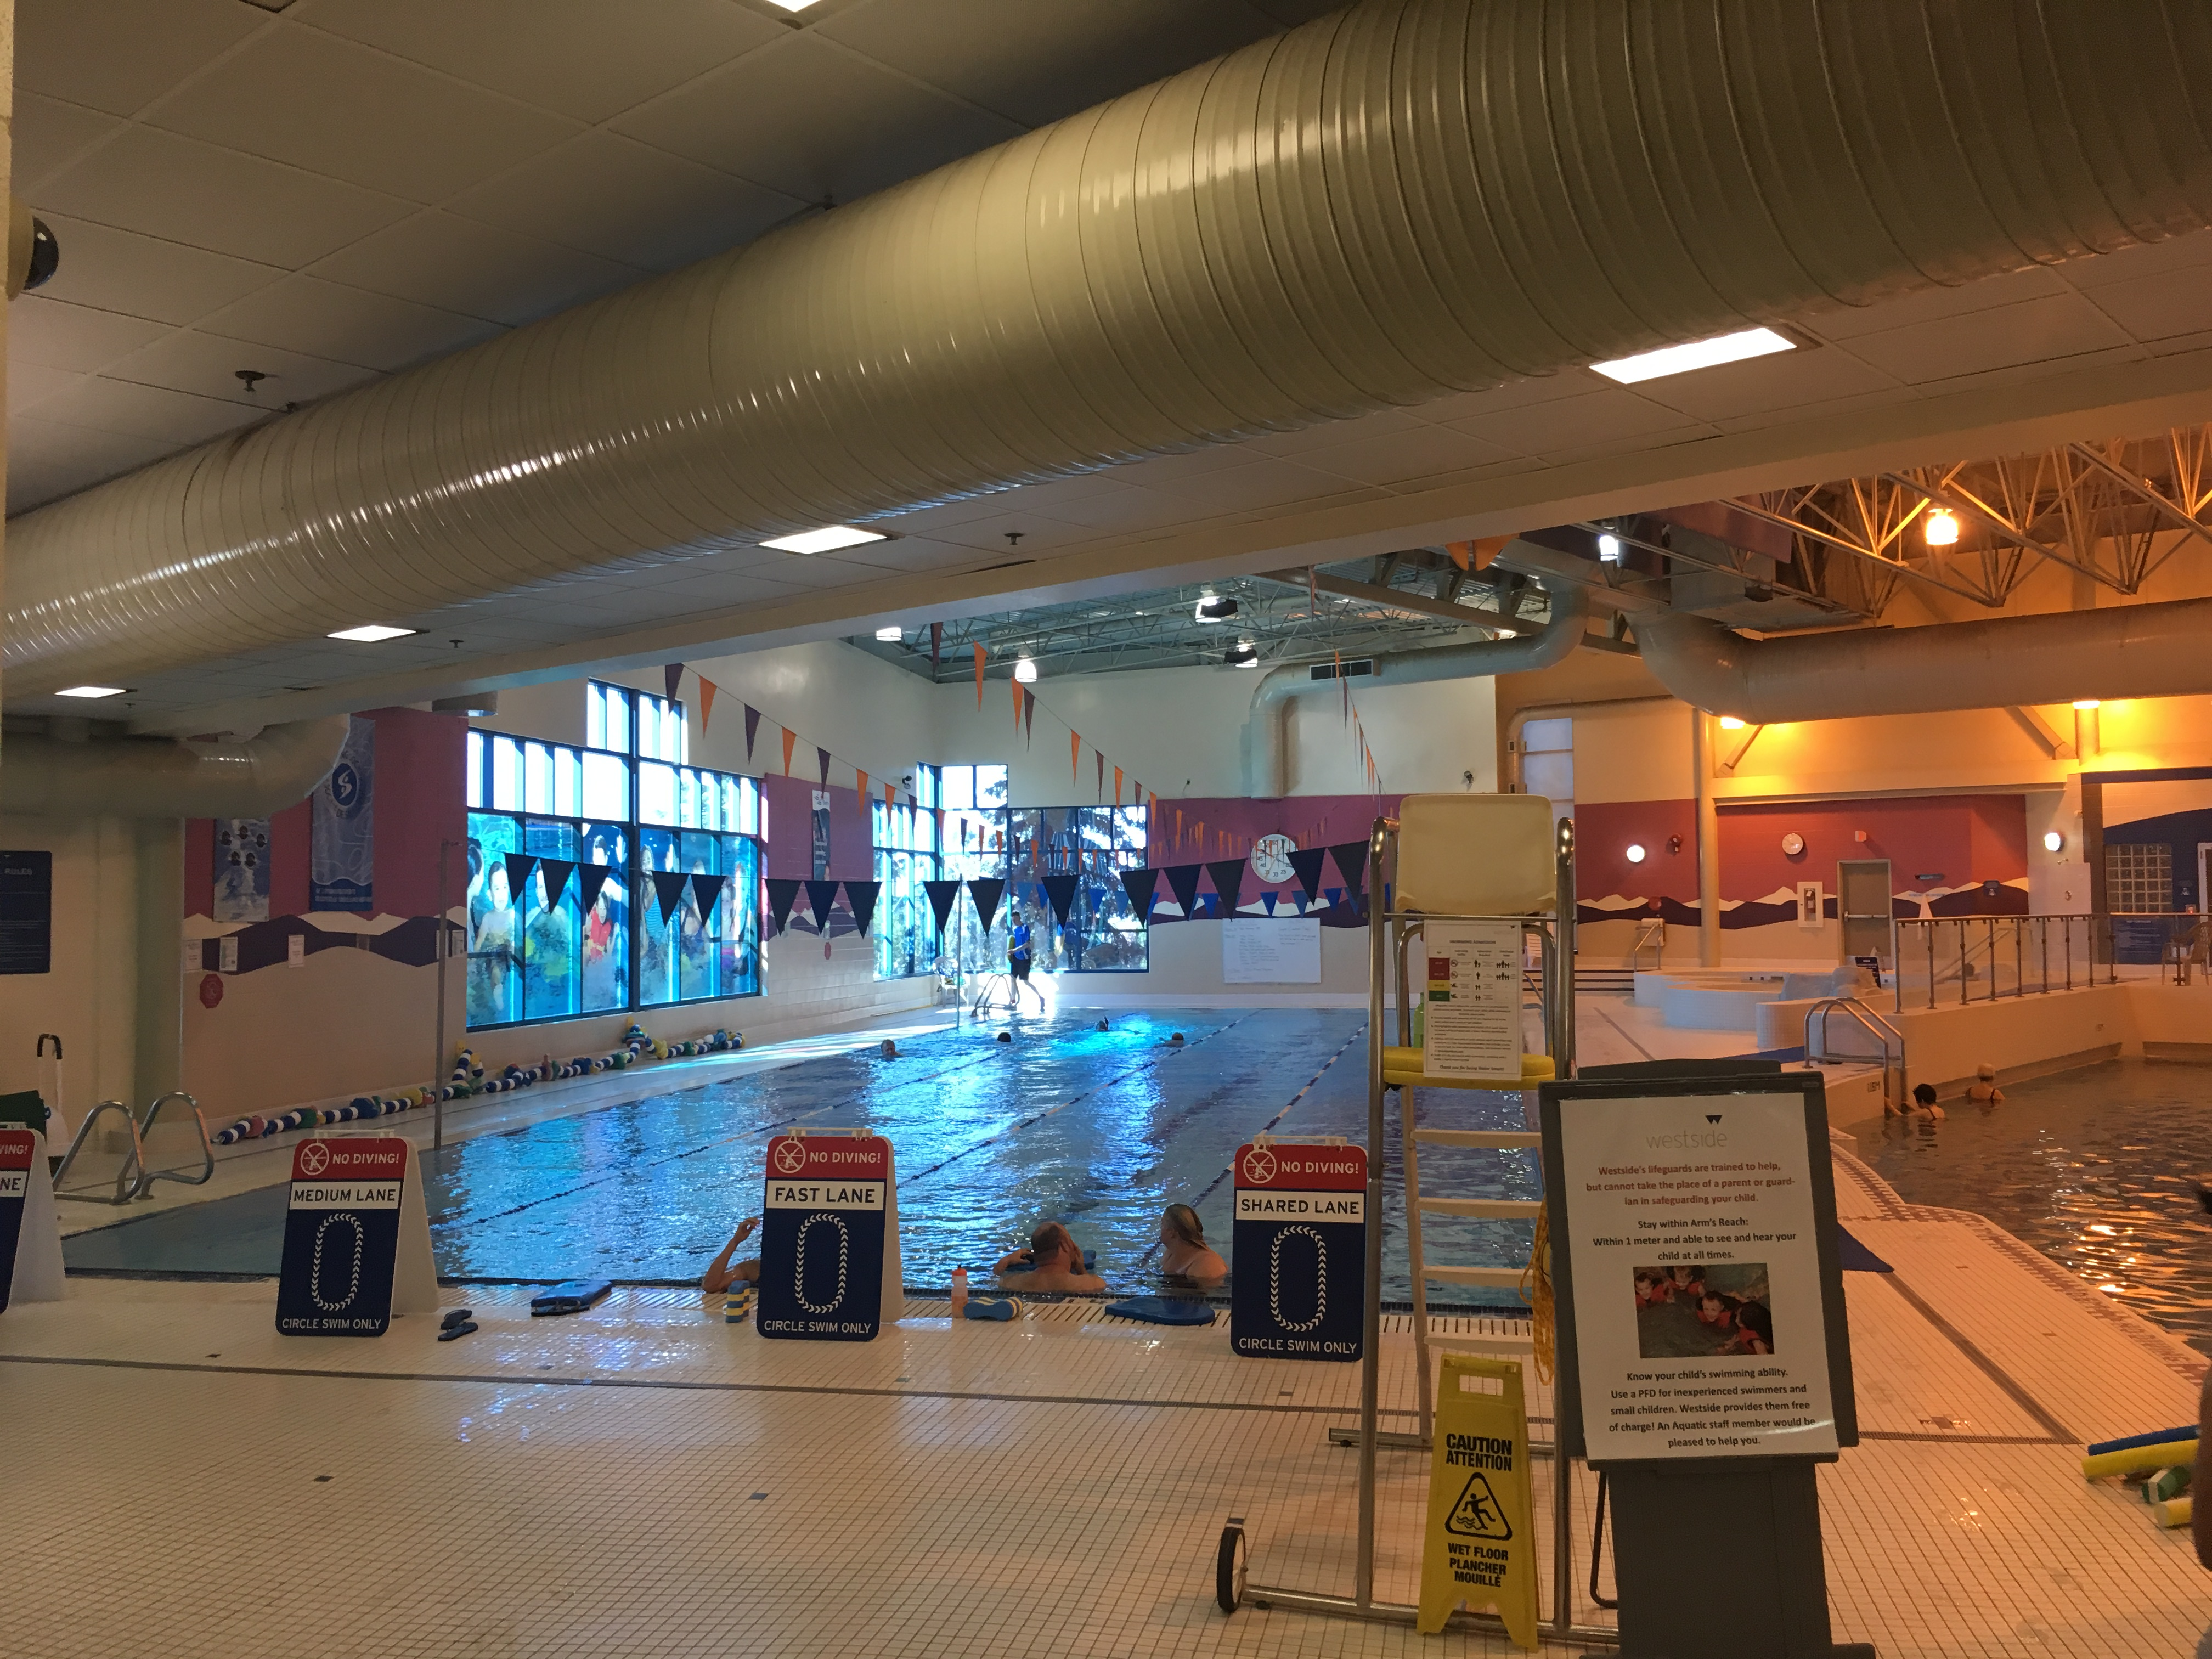 0297 - Westside Rec Center (Calgary)